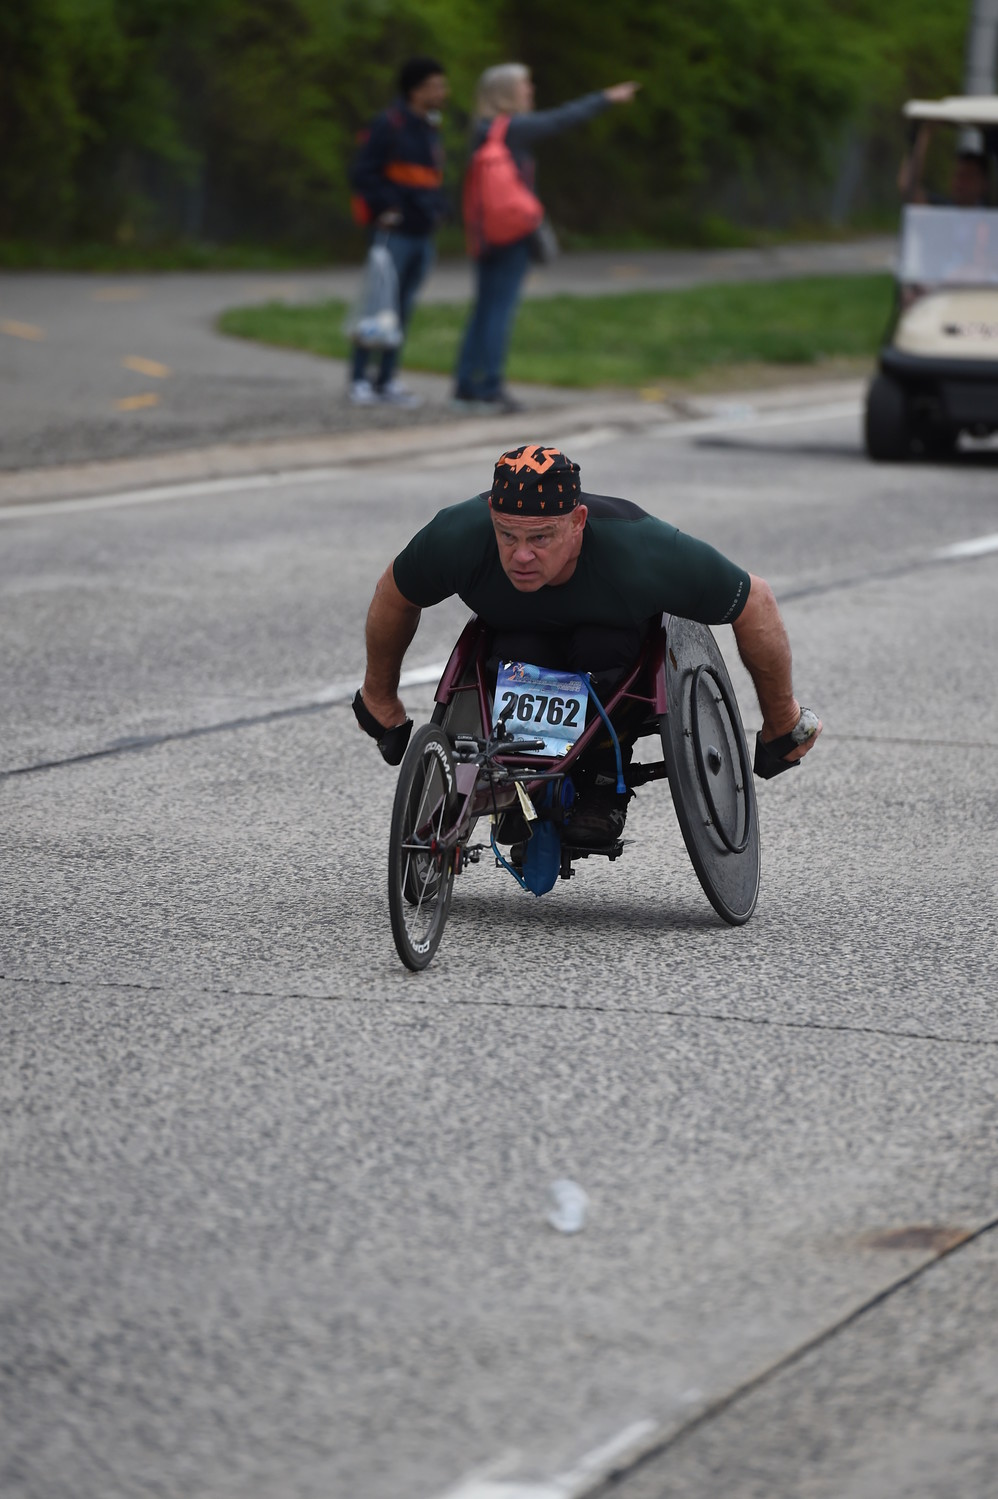 Peter Hawkins, 54, a wheelchair competitor from Malverne, was the first to cross the finish line of the marathon at 2:21:11.